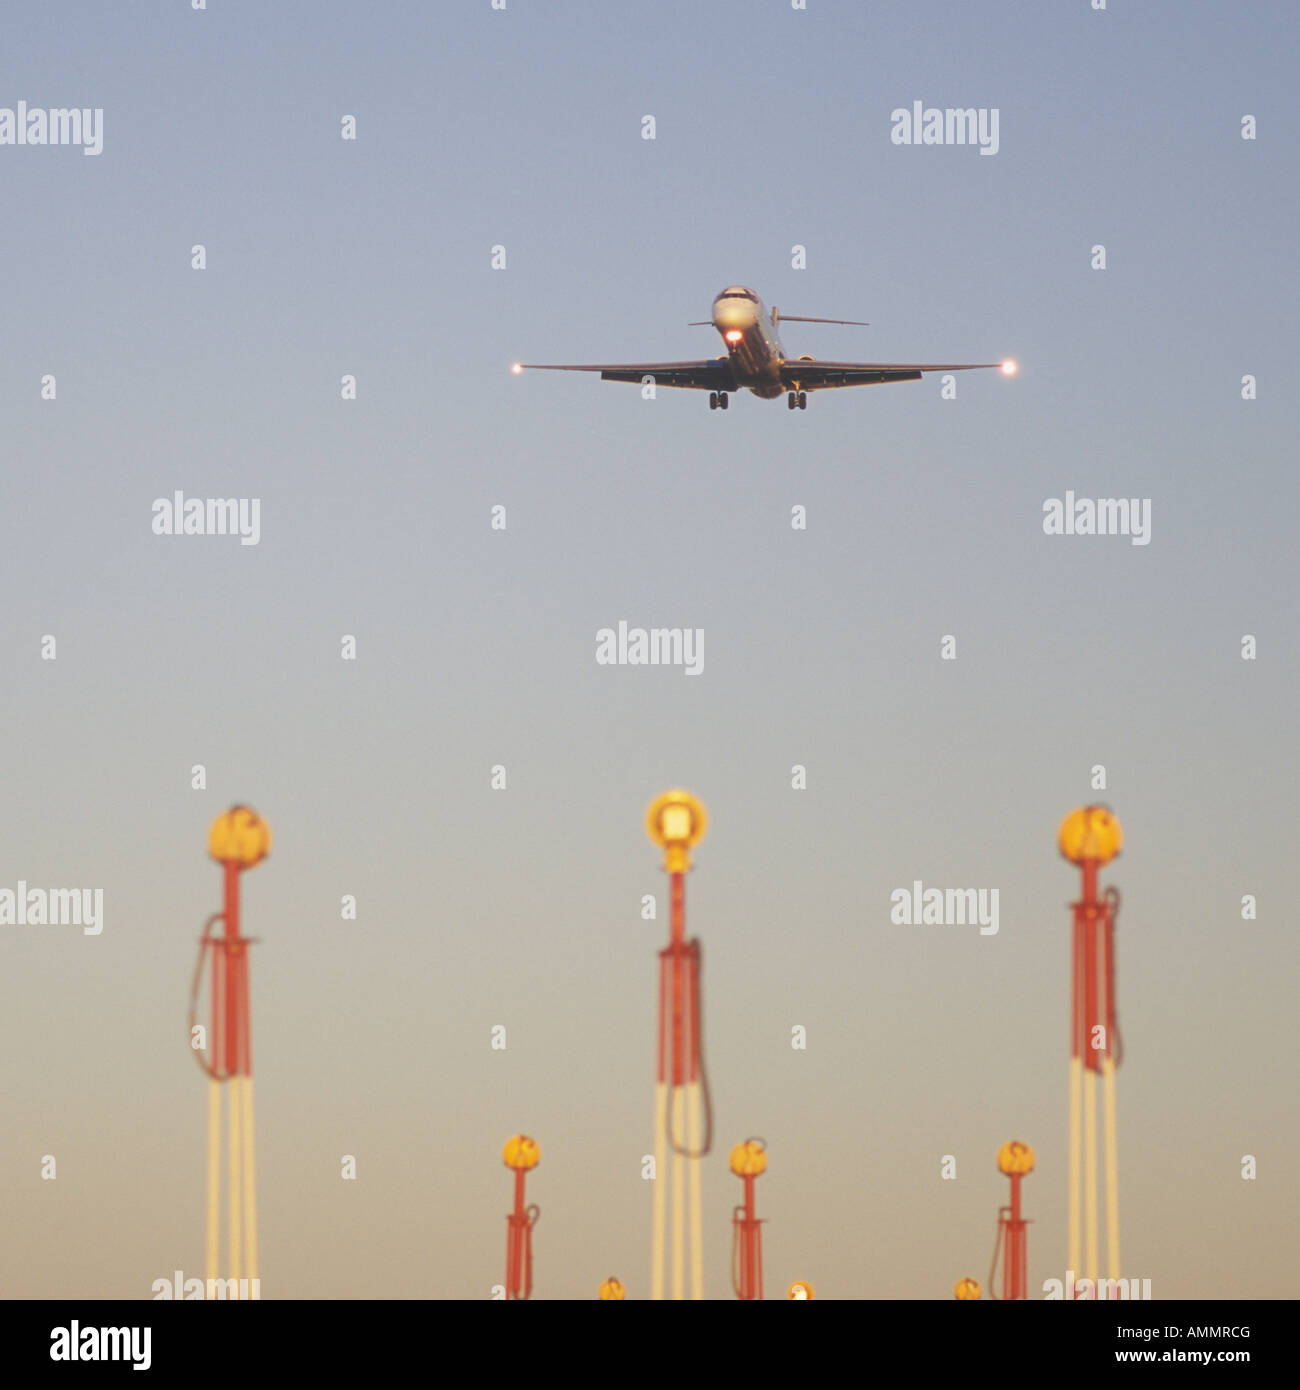 Aircraft on final approach to the Airport of Palma de Mallorca Balearic Islands Spain 9th December 2007 - Stock Image